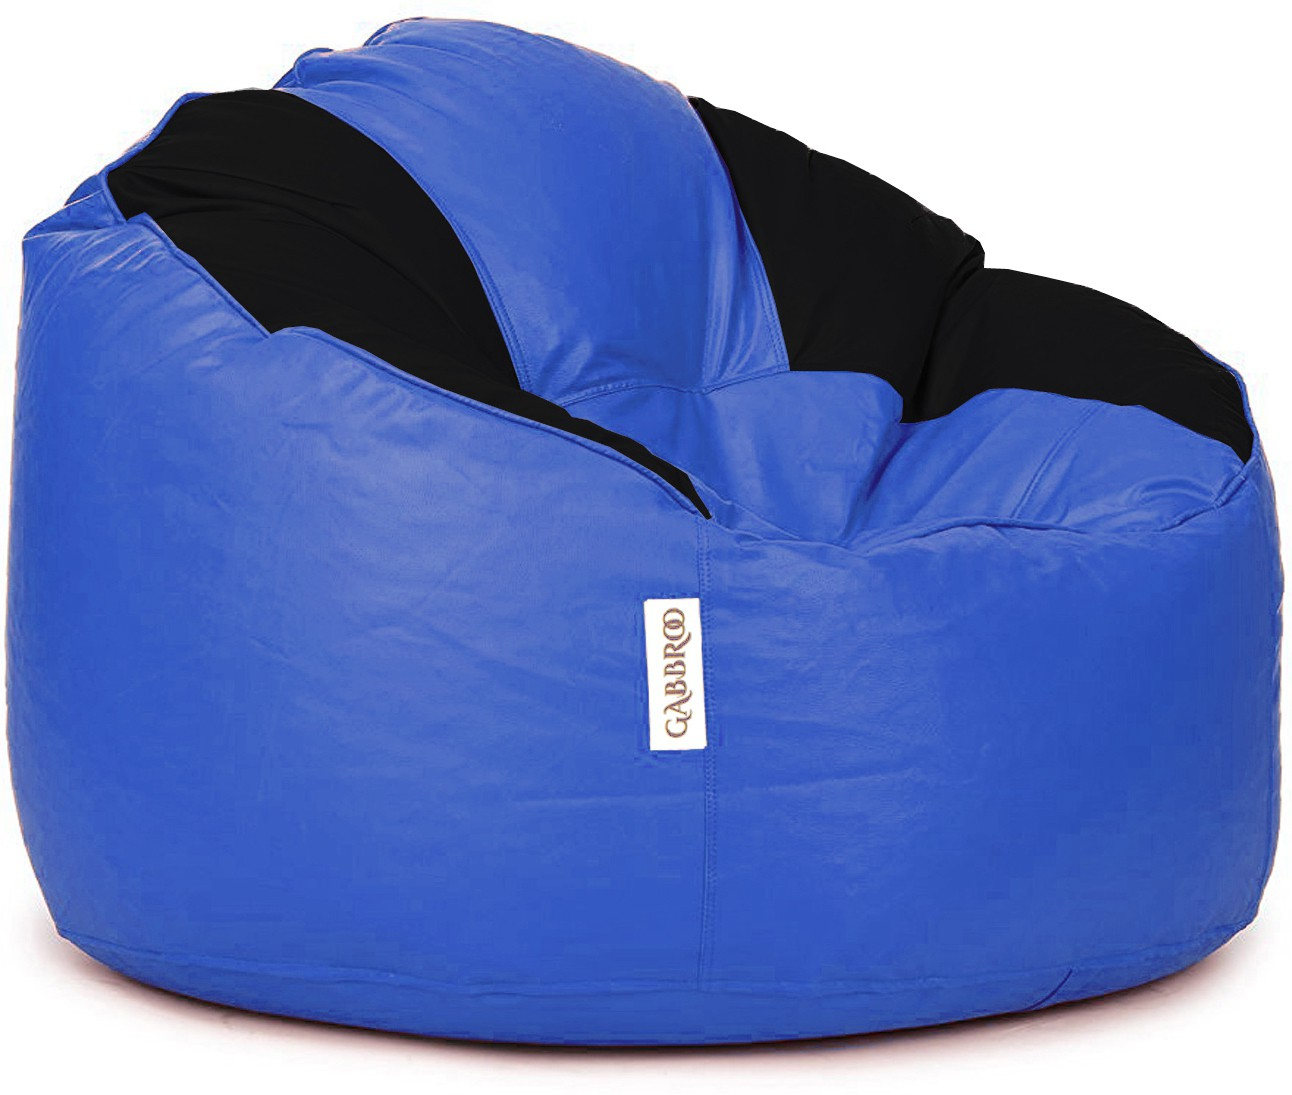 View Gabbroo XL Lounger Bean Bag Cover(Blue, Black) Furniture (StyleCraft)